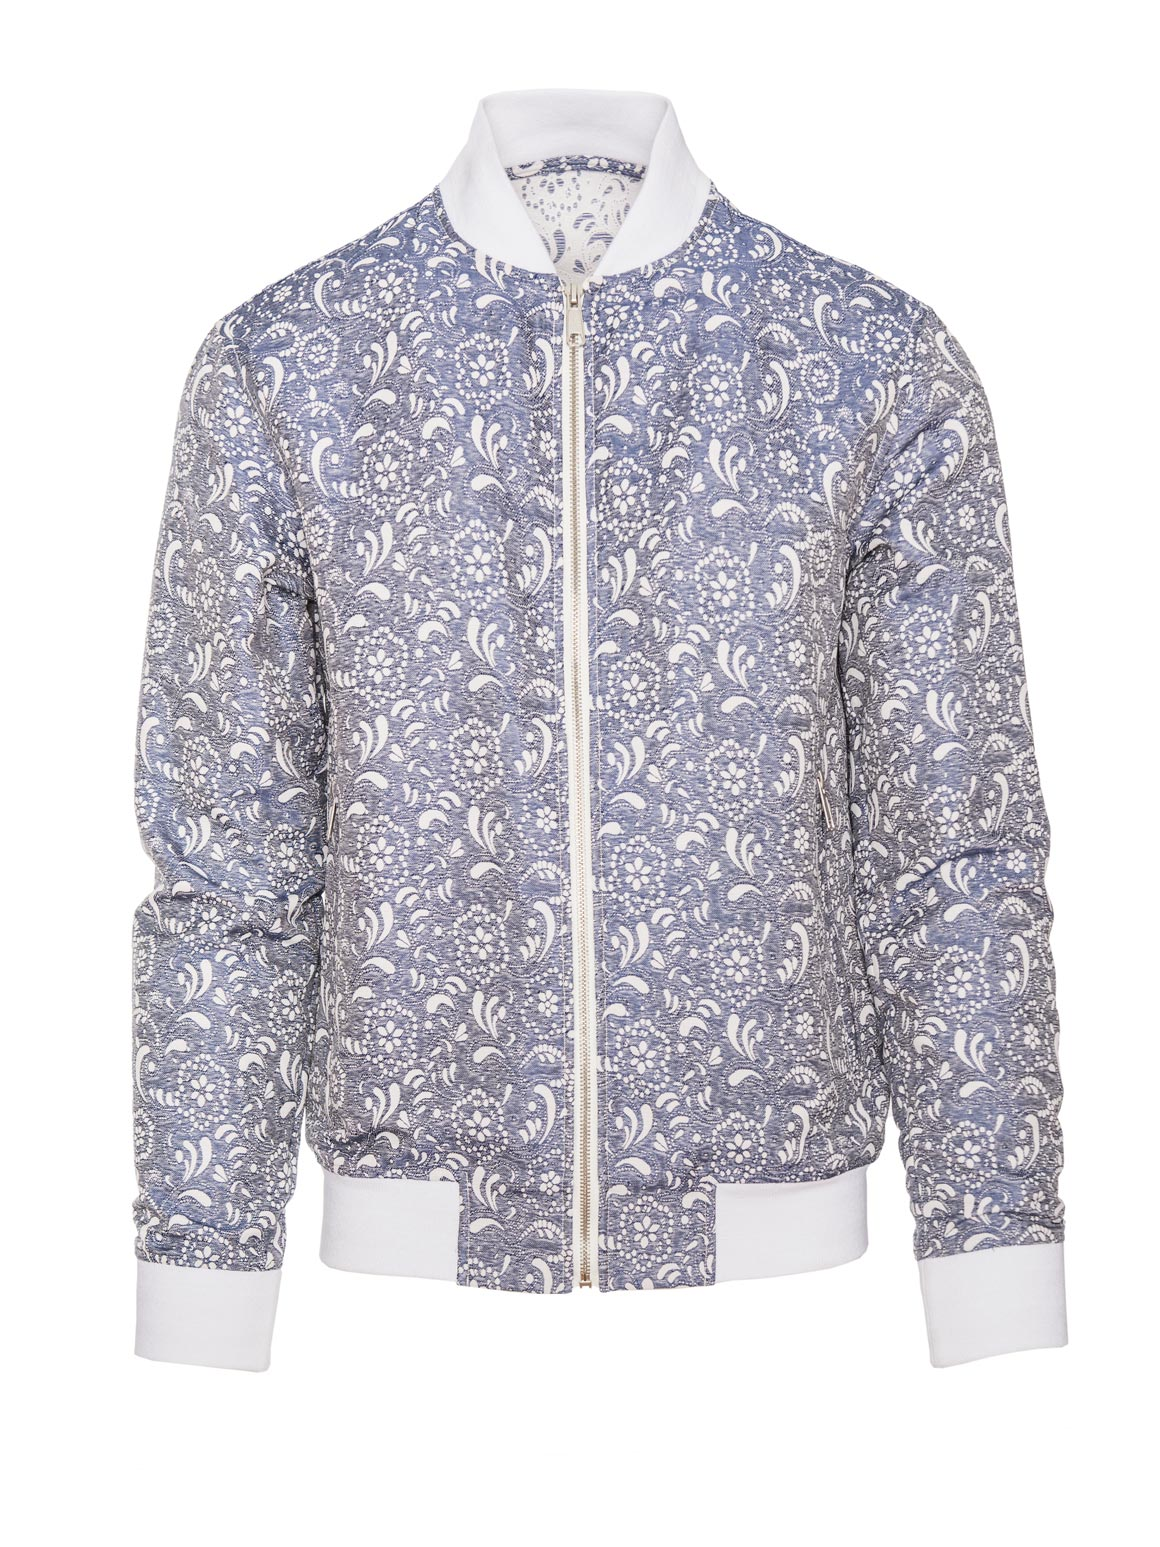 paisley & gray denim & paisley jacquard slim fit crew neck collar bomber jacket 2178Z contrast lining white ribbed hem solid silver zipper slant pockets fitted waist elasticated cuffs front zip closure